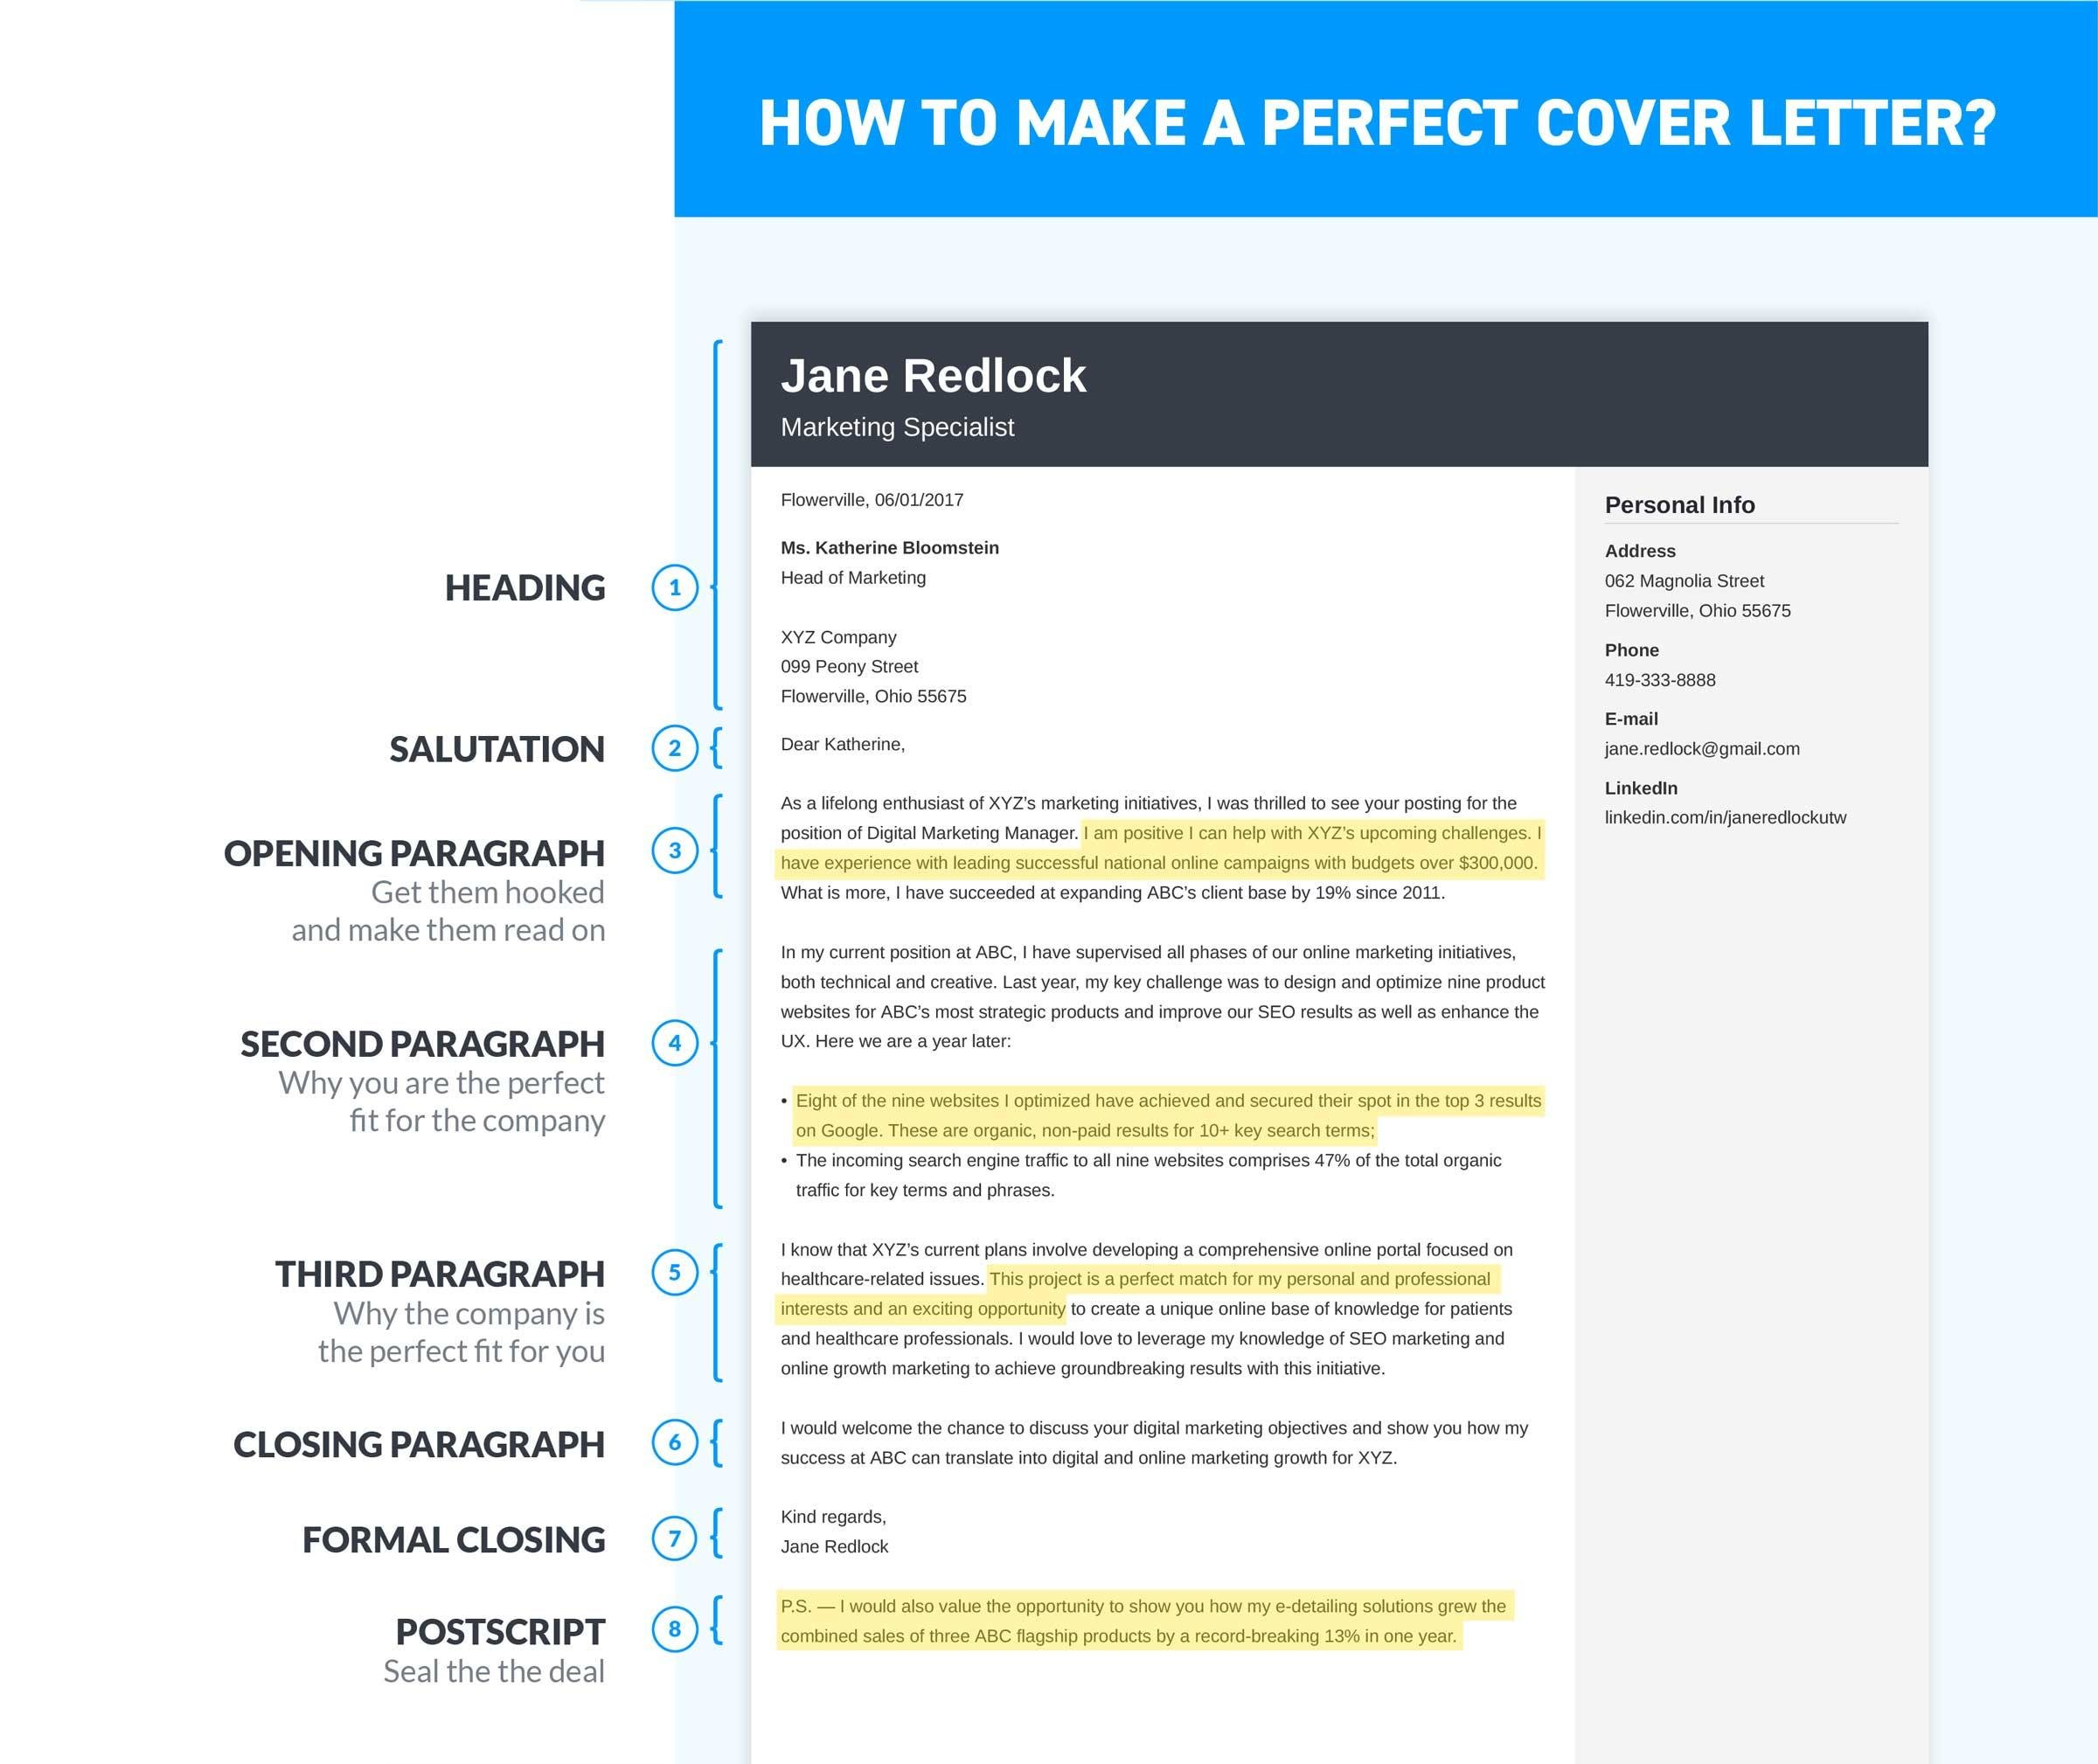 How To Make A Perfect Cover Letter Infographic  How To Make A Professional Cover Letter